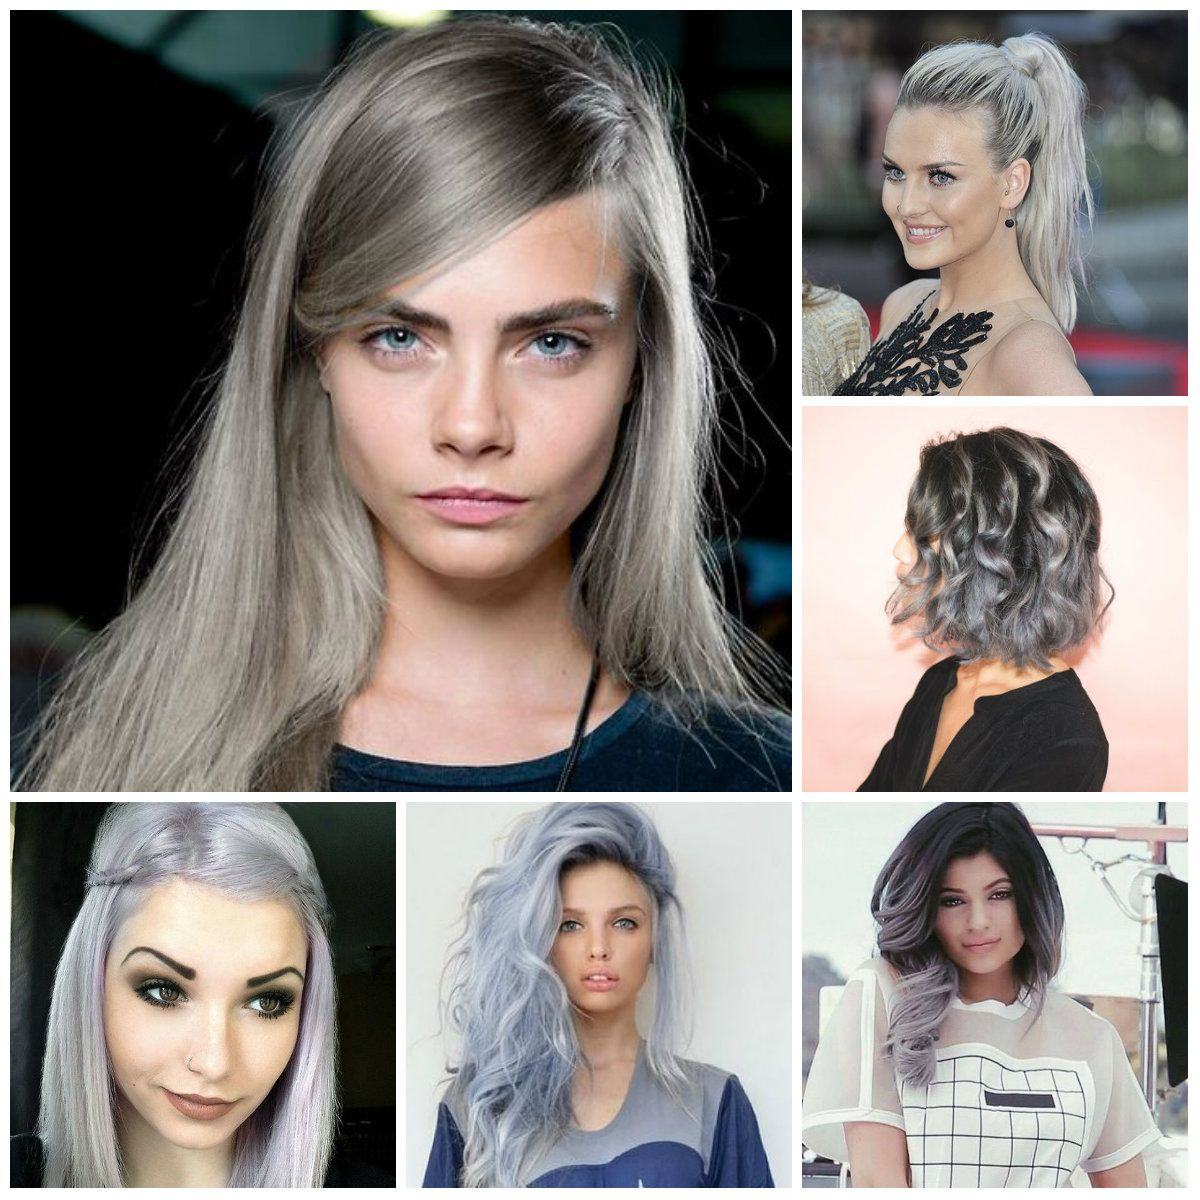 Hair color trends for 2016 | Hairstyles 2016 New Haircuts and Hair ...